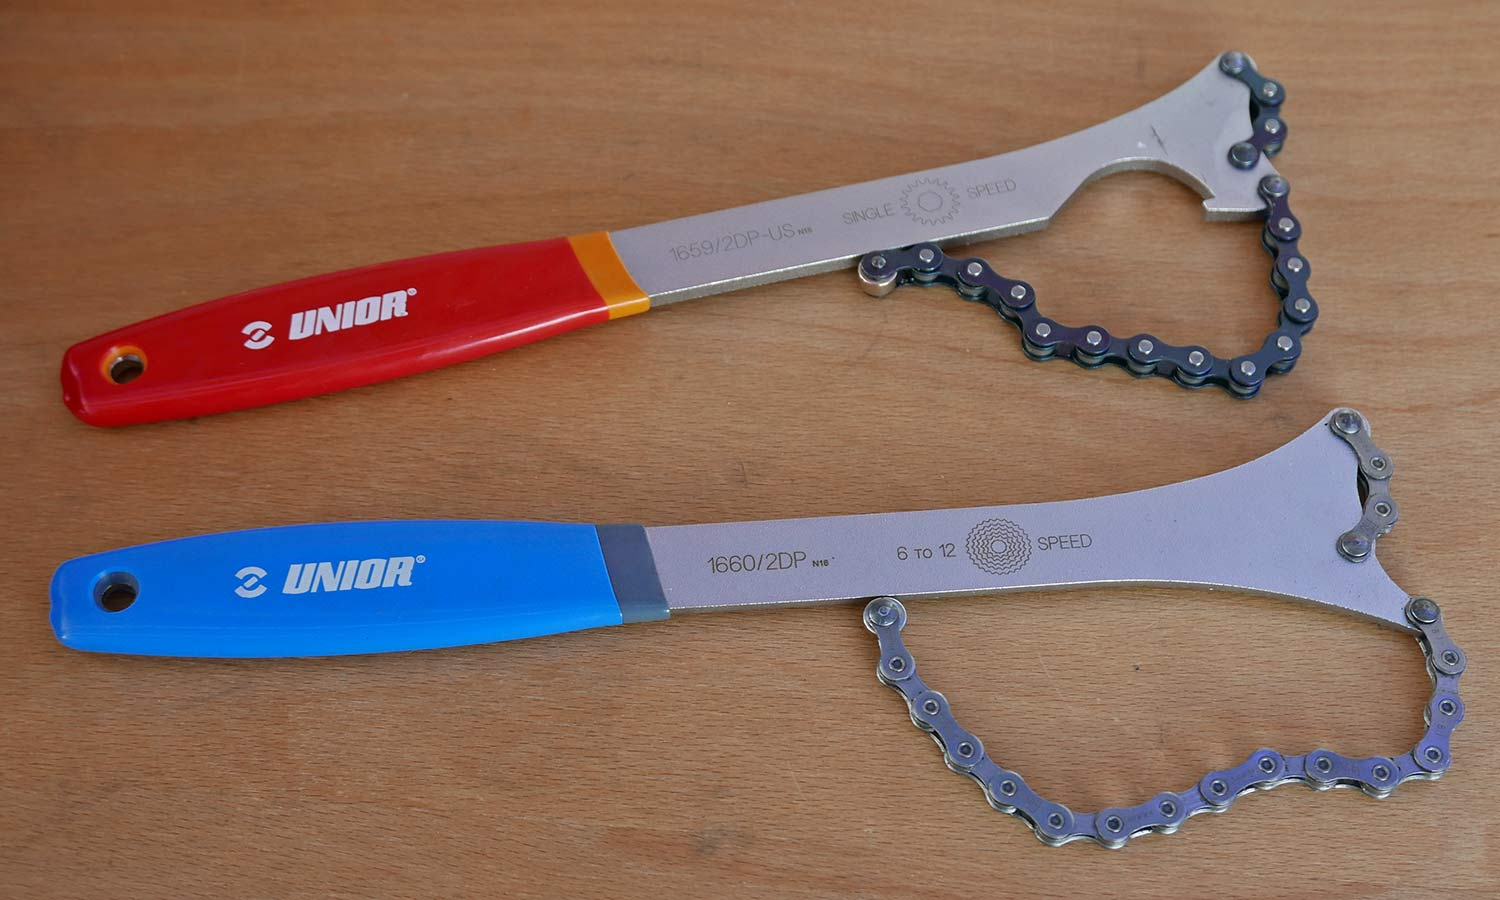 Unior professional bike tools made in Europe, chain whips